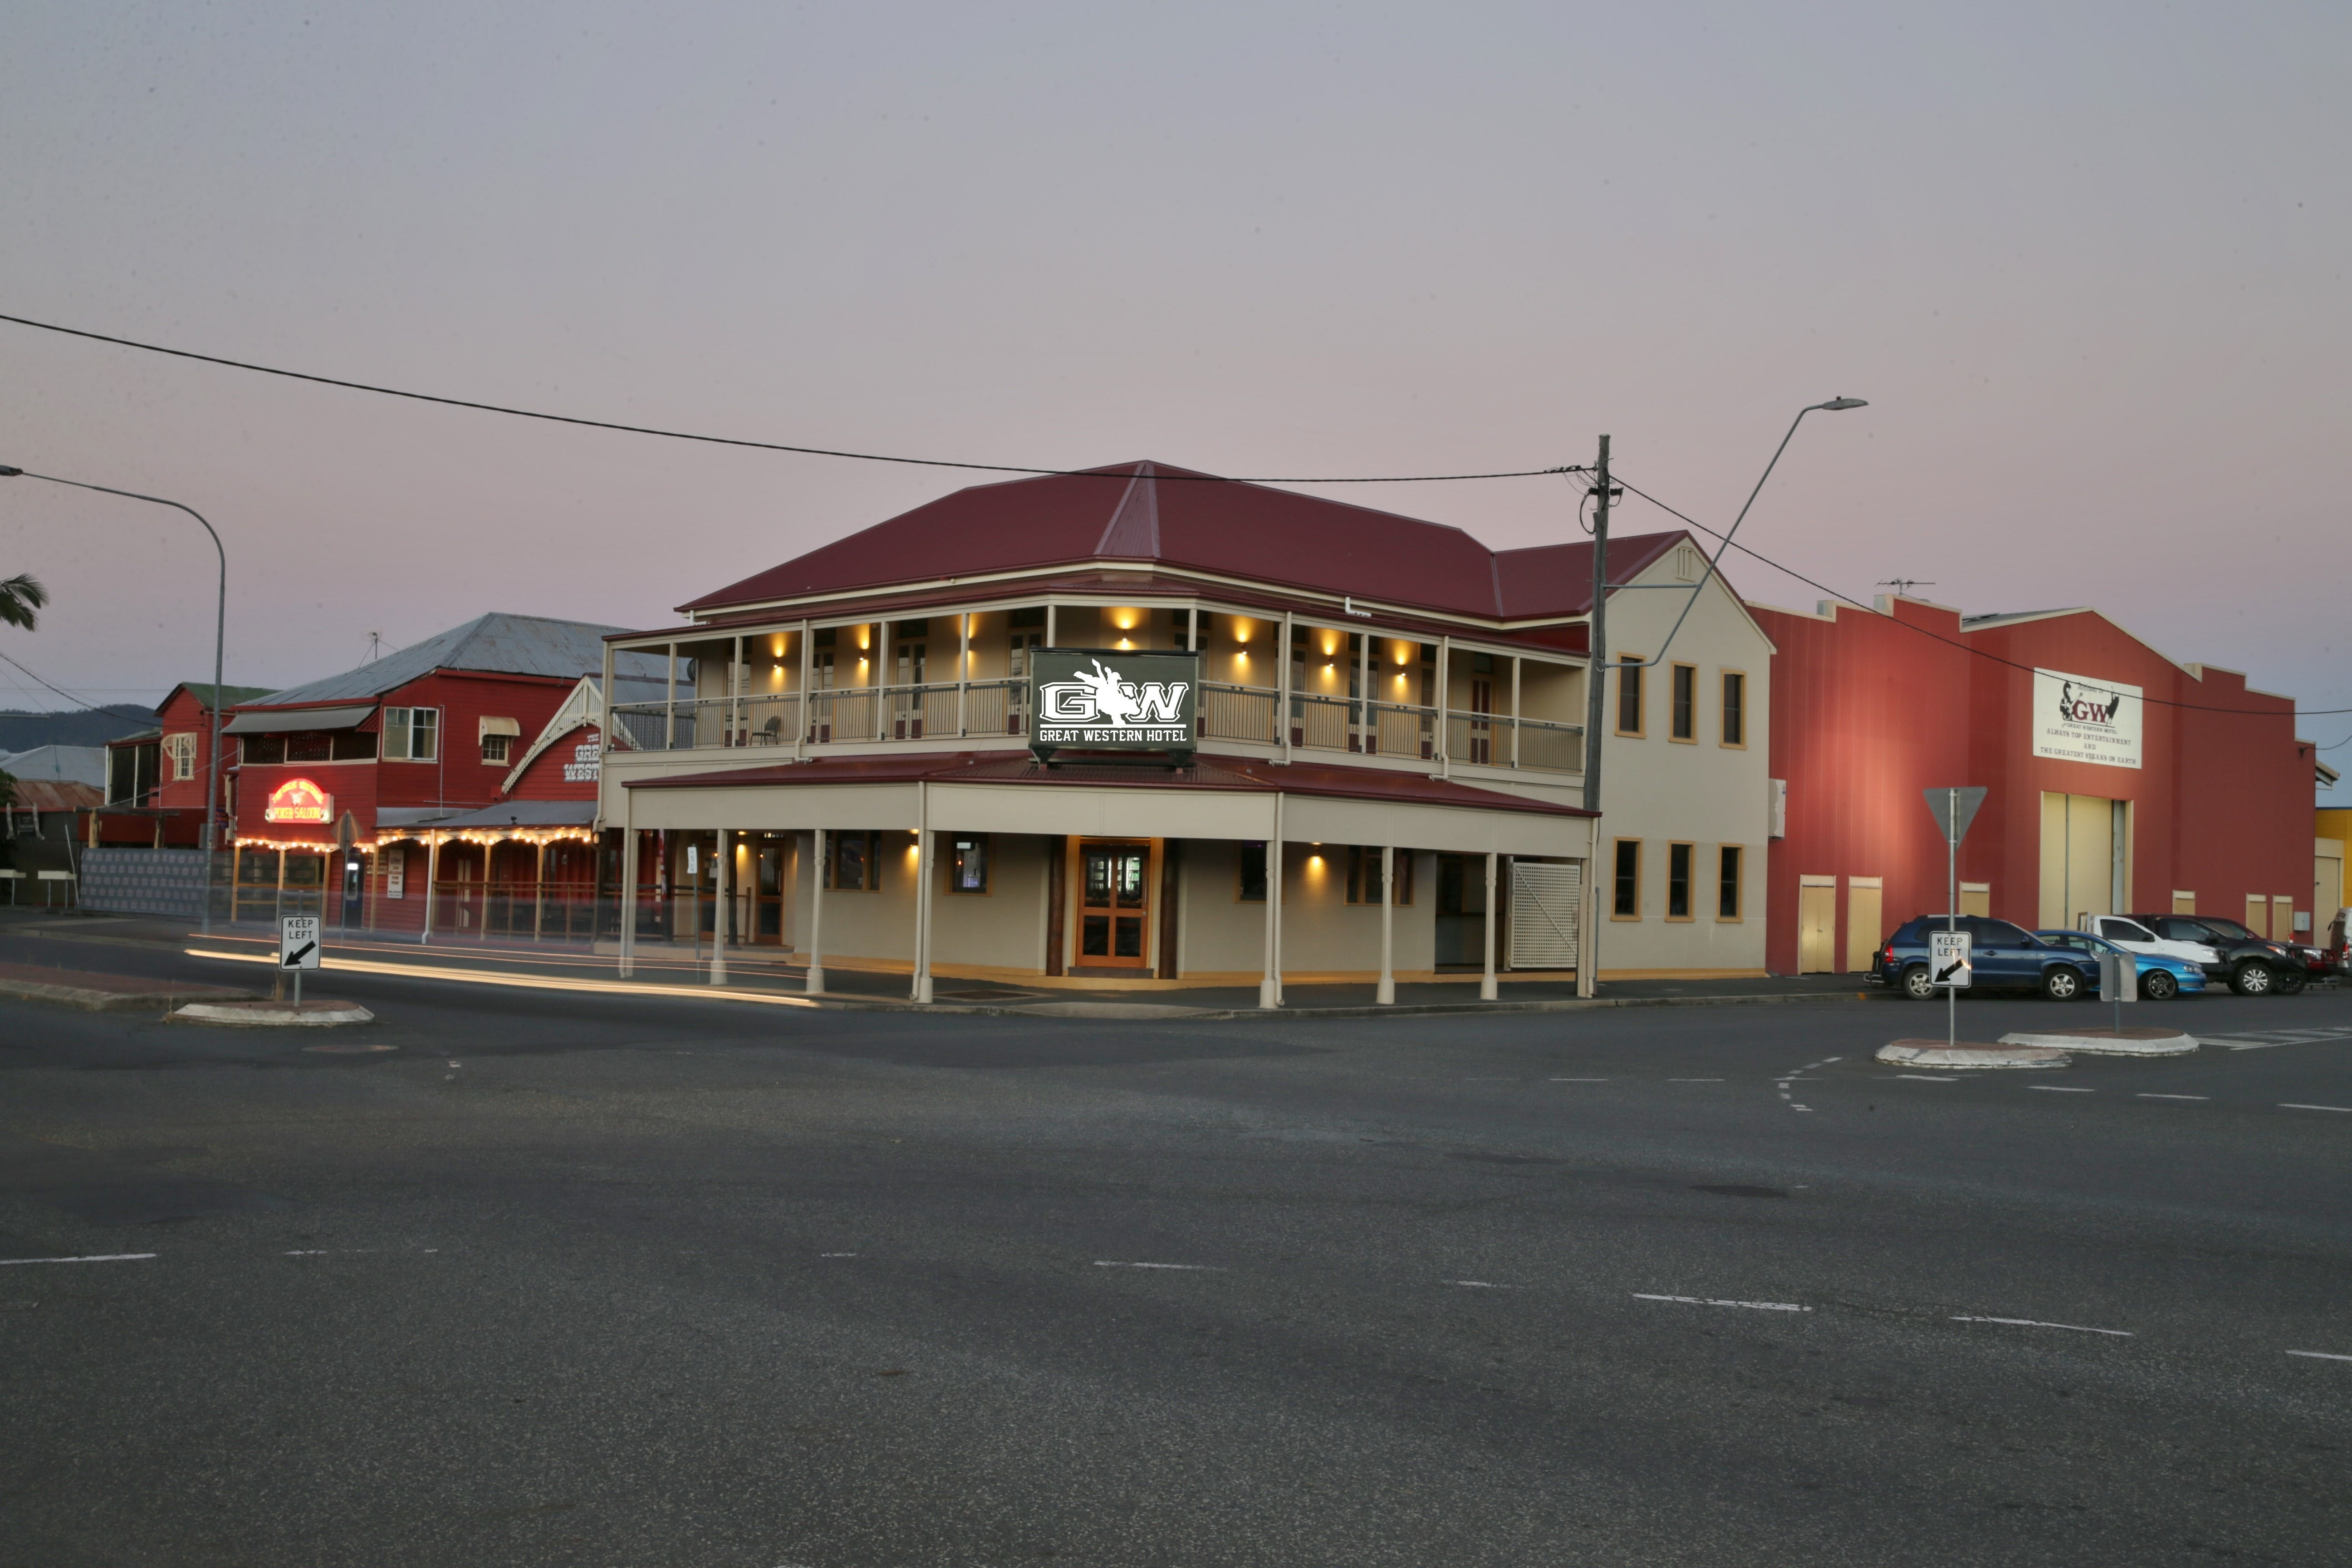 Great Western Hotel - Yarra Valley Accommodation